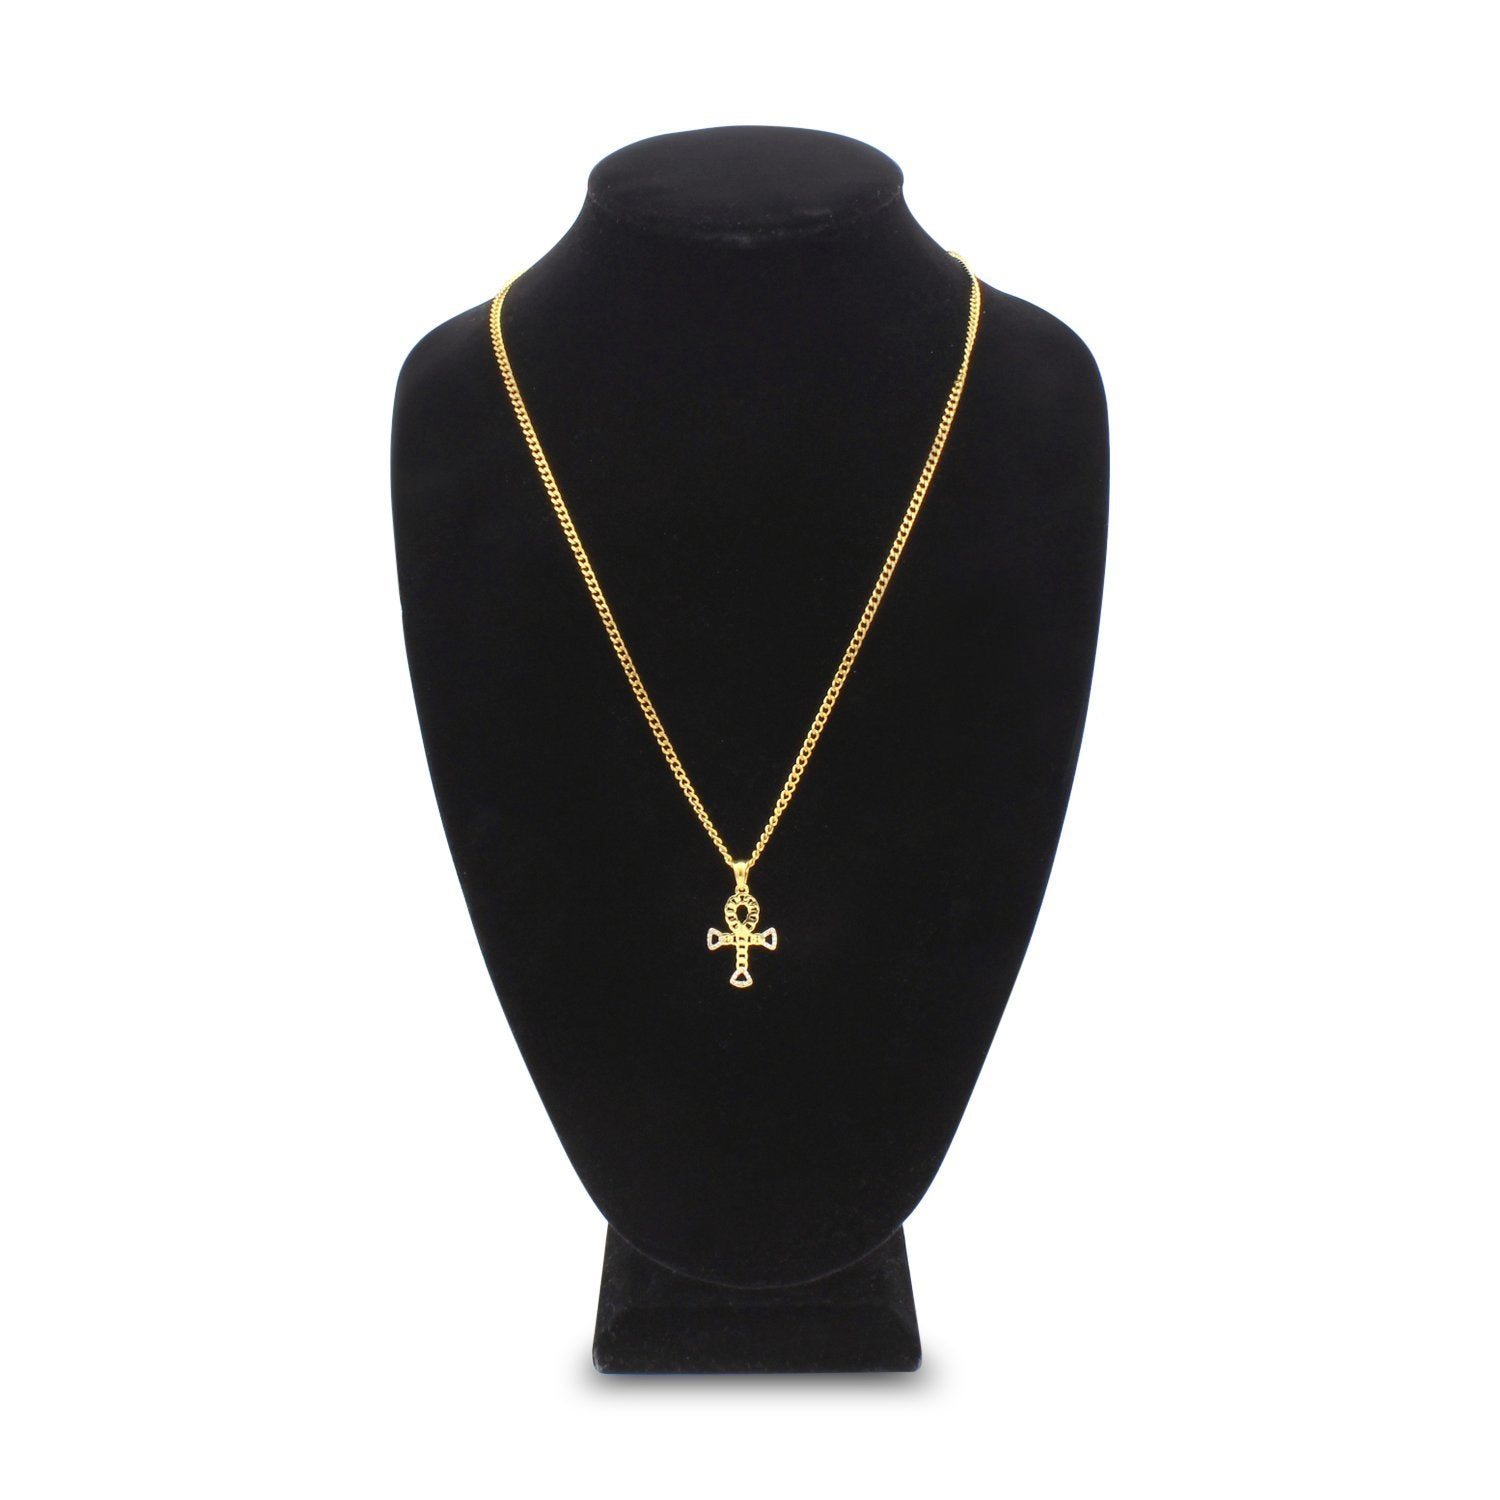 Iced Out Hollow Ankh Charm Necklace Stainless Steel Bling CZ